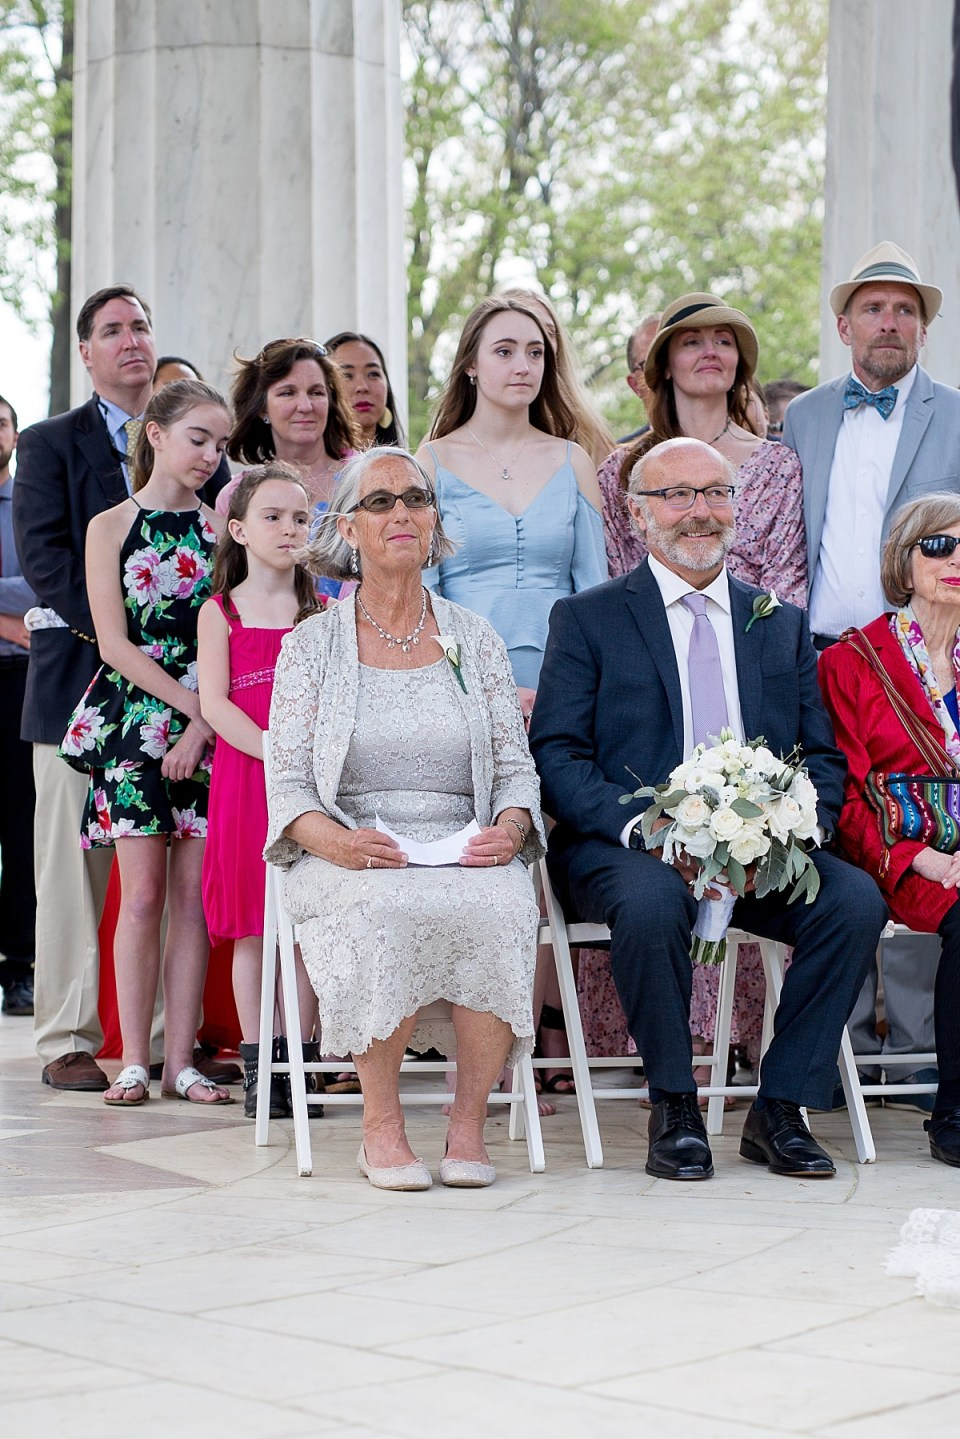 Wedding Ceremony in DC War Memorial by Erin Tetterton Photography